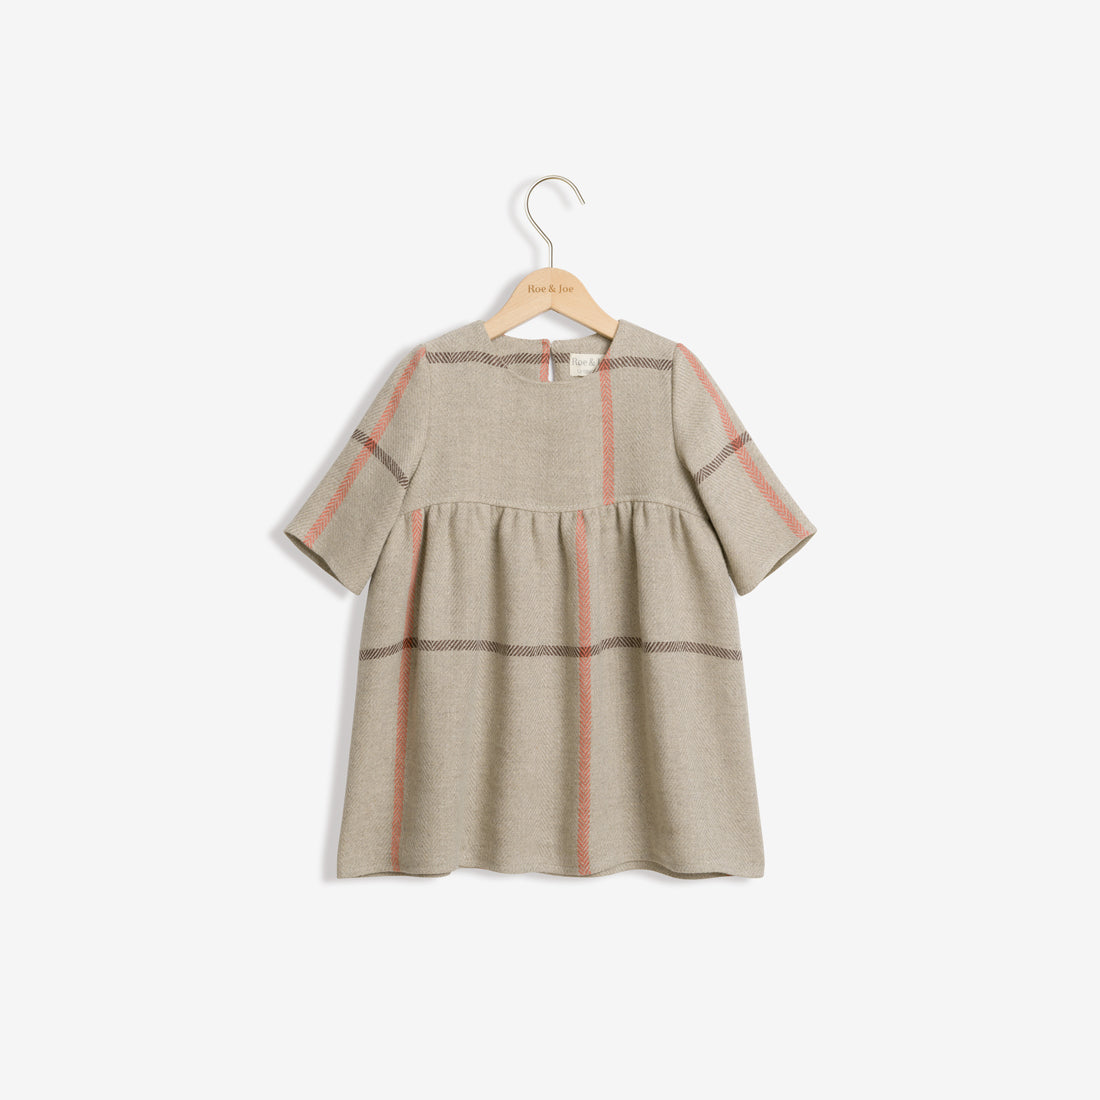 Linen Blend Woven Dress - Mix Checks